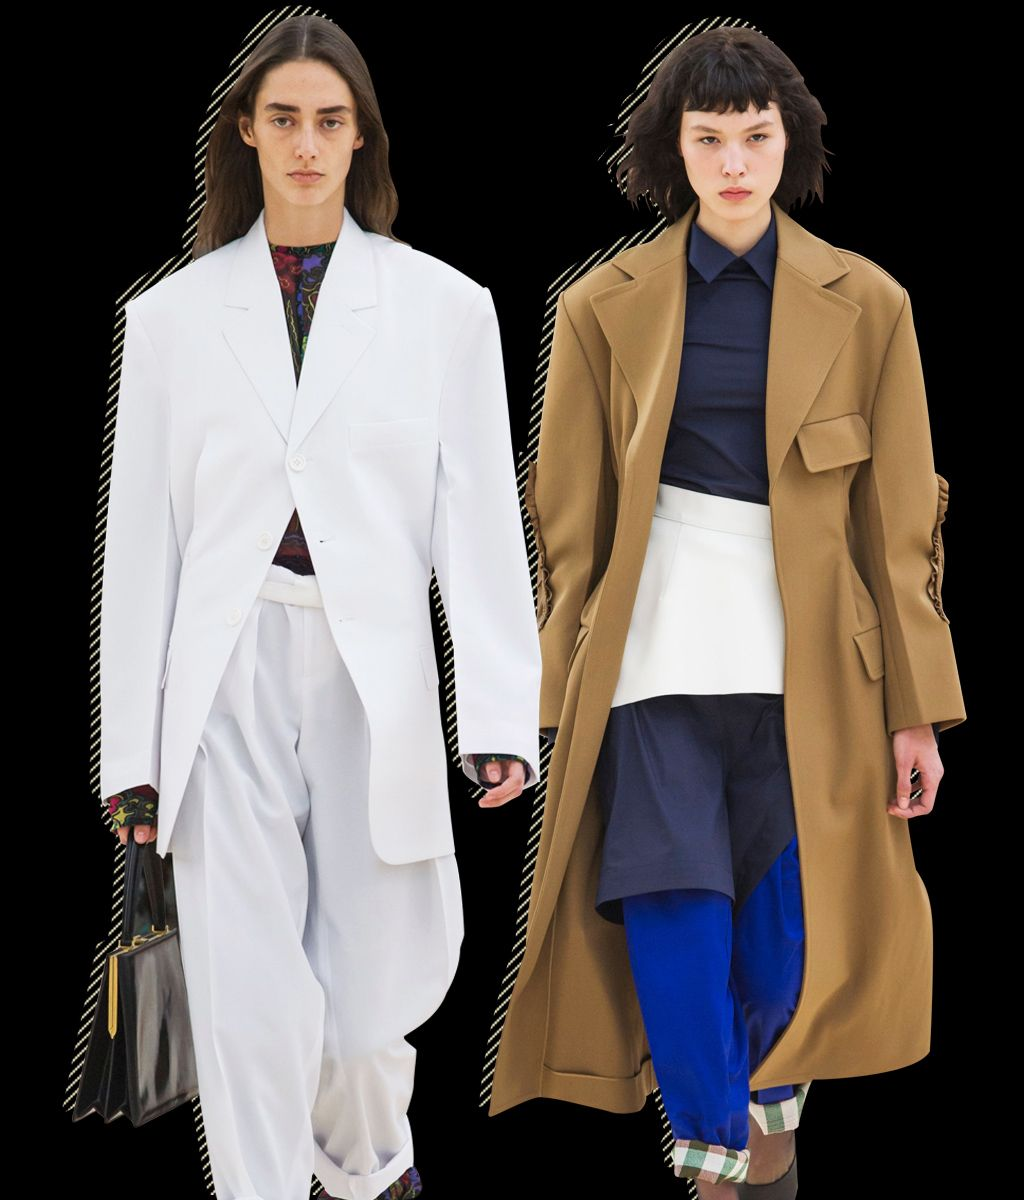 df0c2f281adc The Mystery of Phoebe Philo